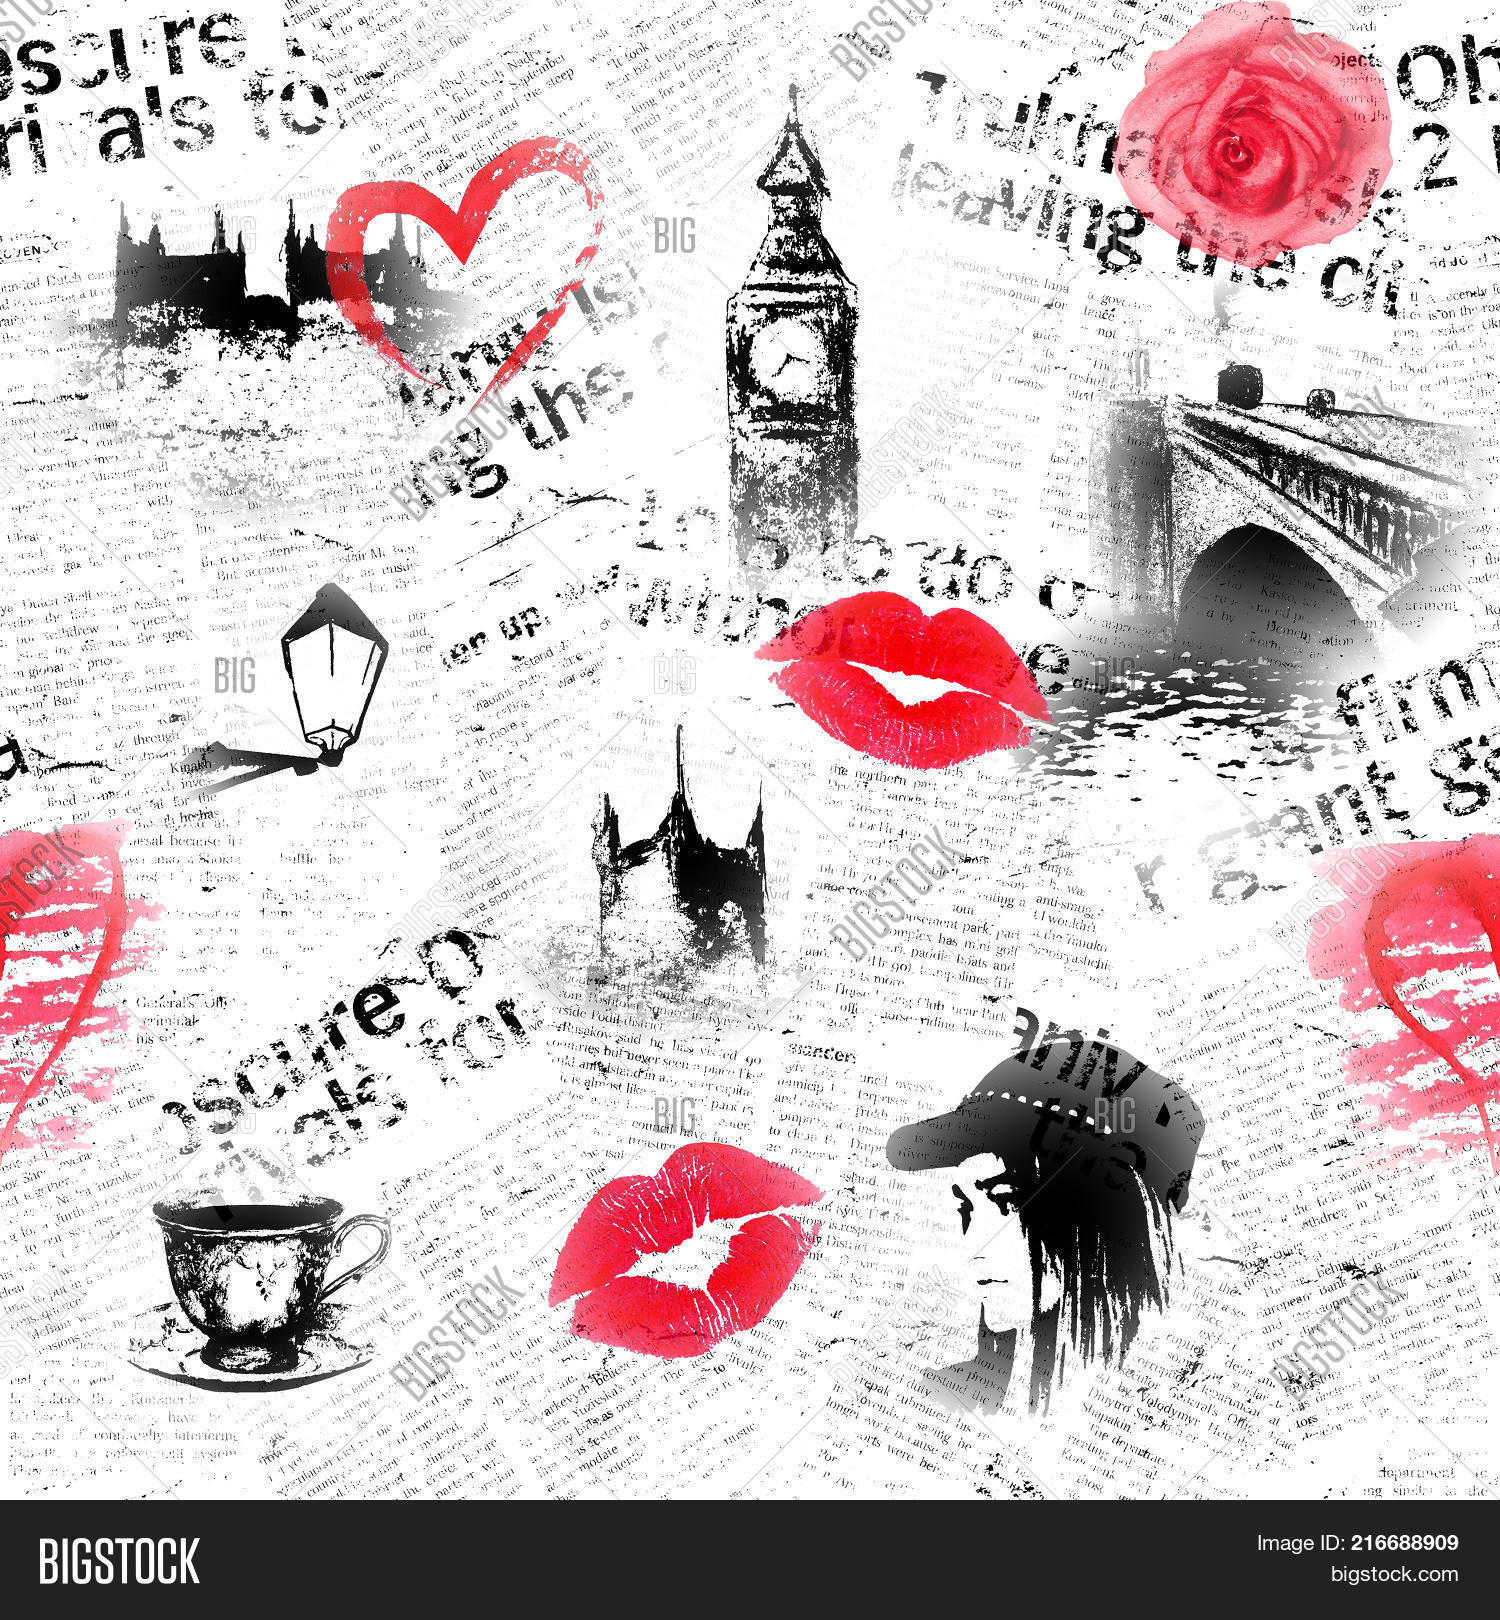 Black White Red London Image Photo Free Trial Bigstock